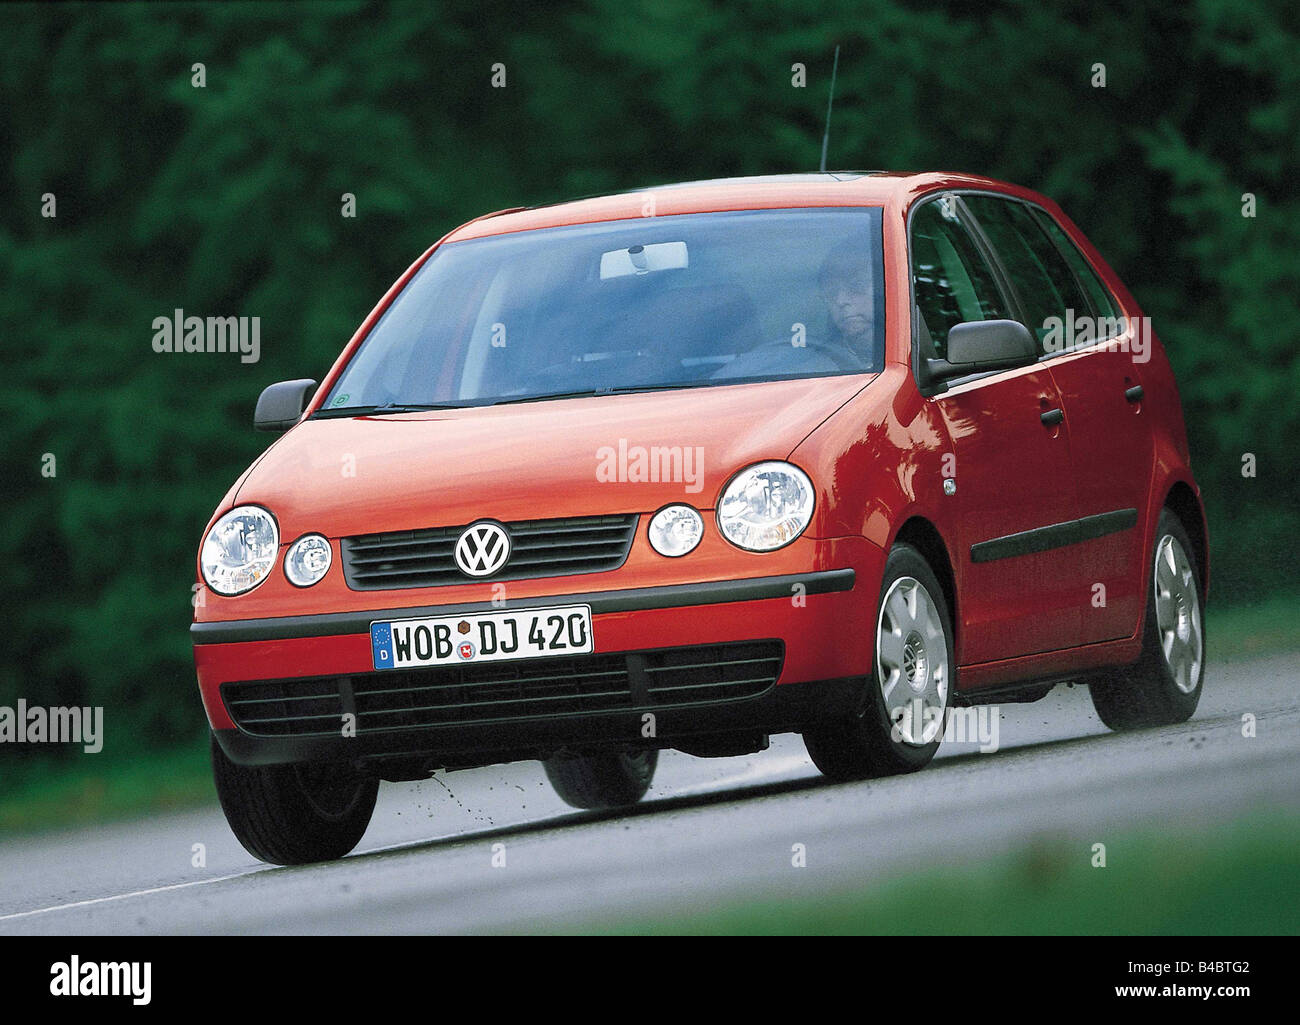 Car Vw Volkswagen Polo Small Approx Limousine Model Year 2002 Stock Photo Alamy